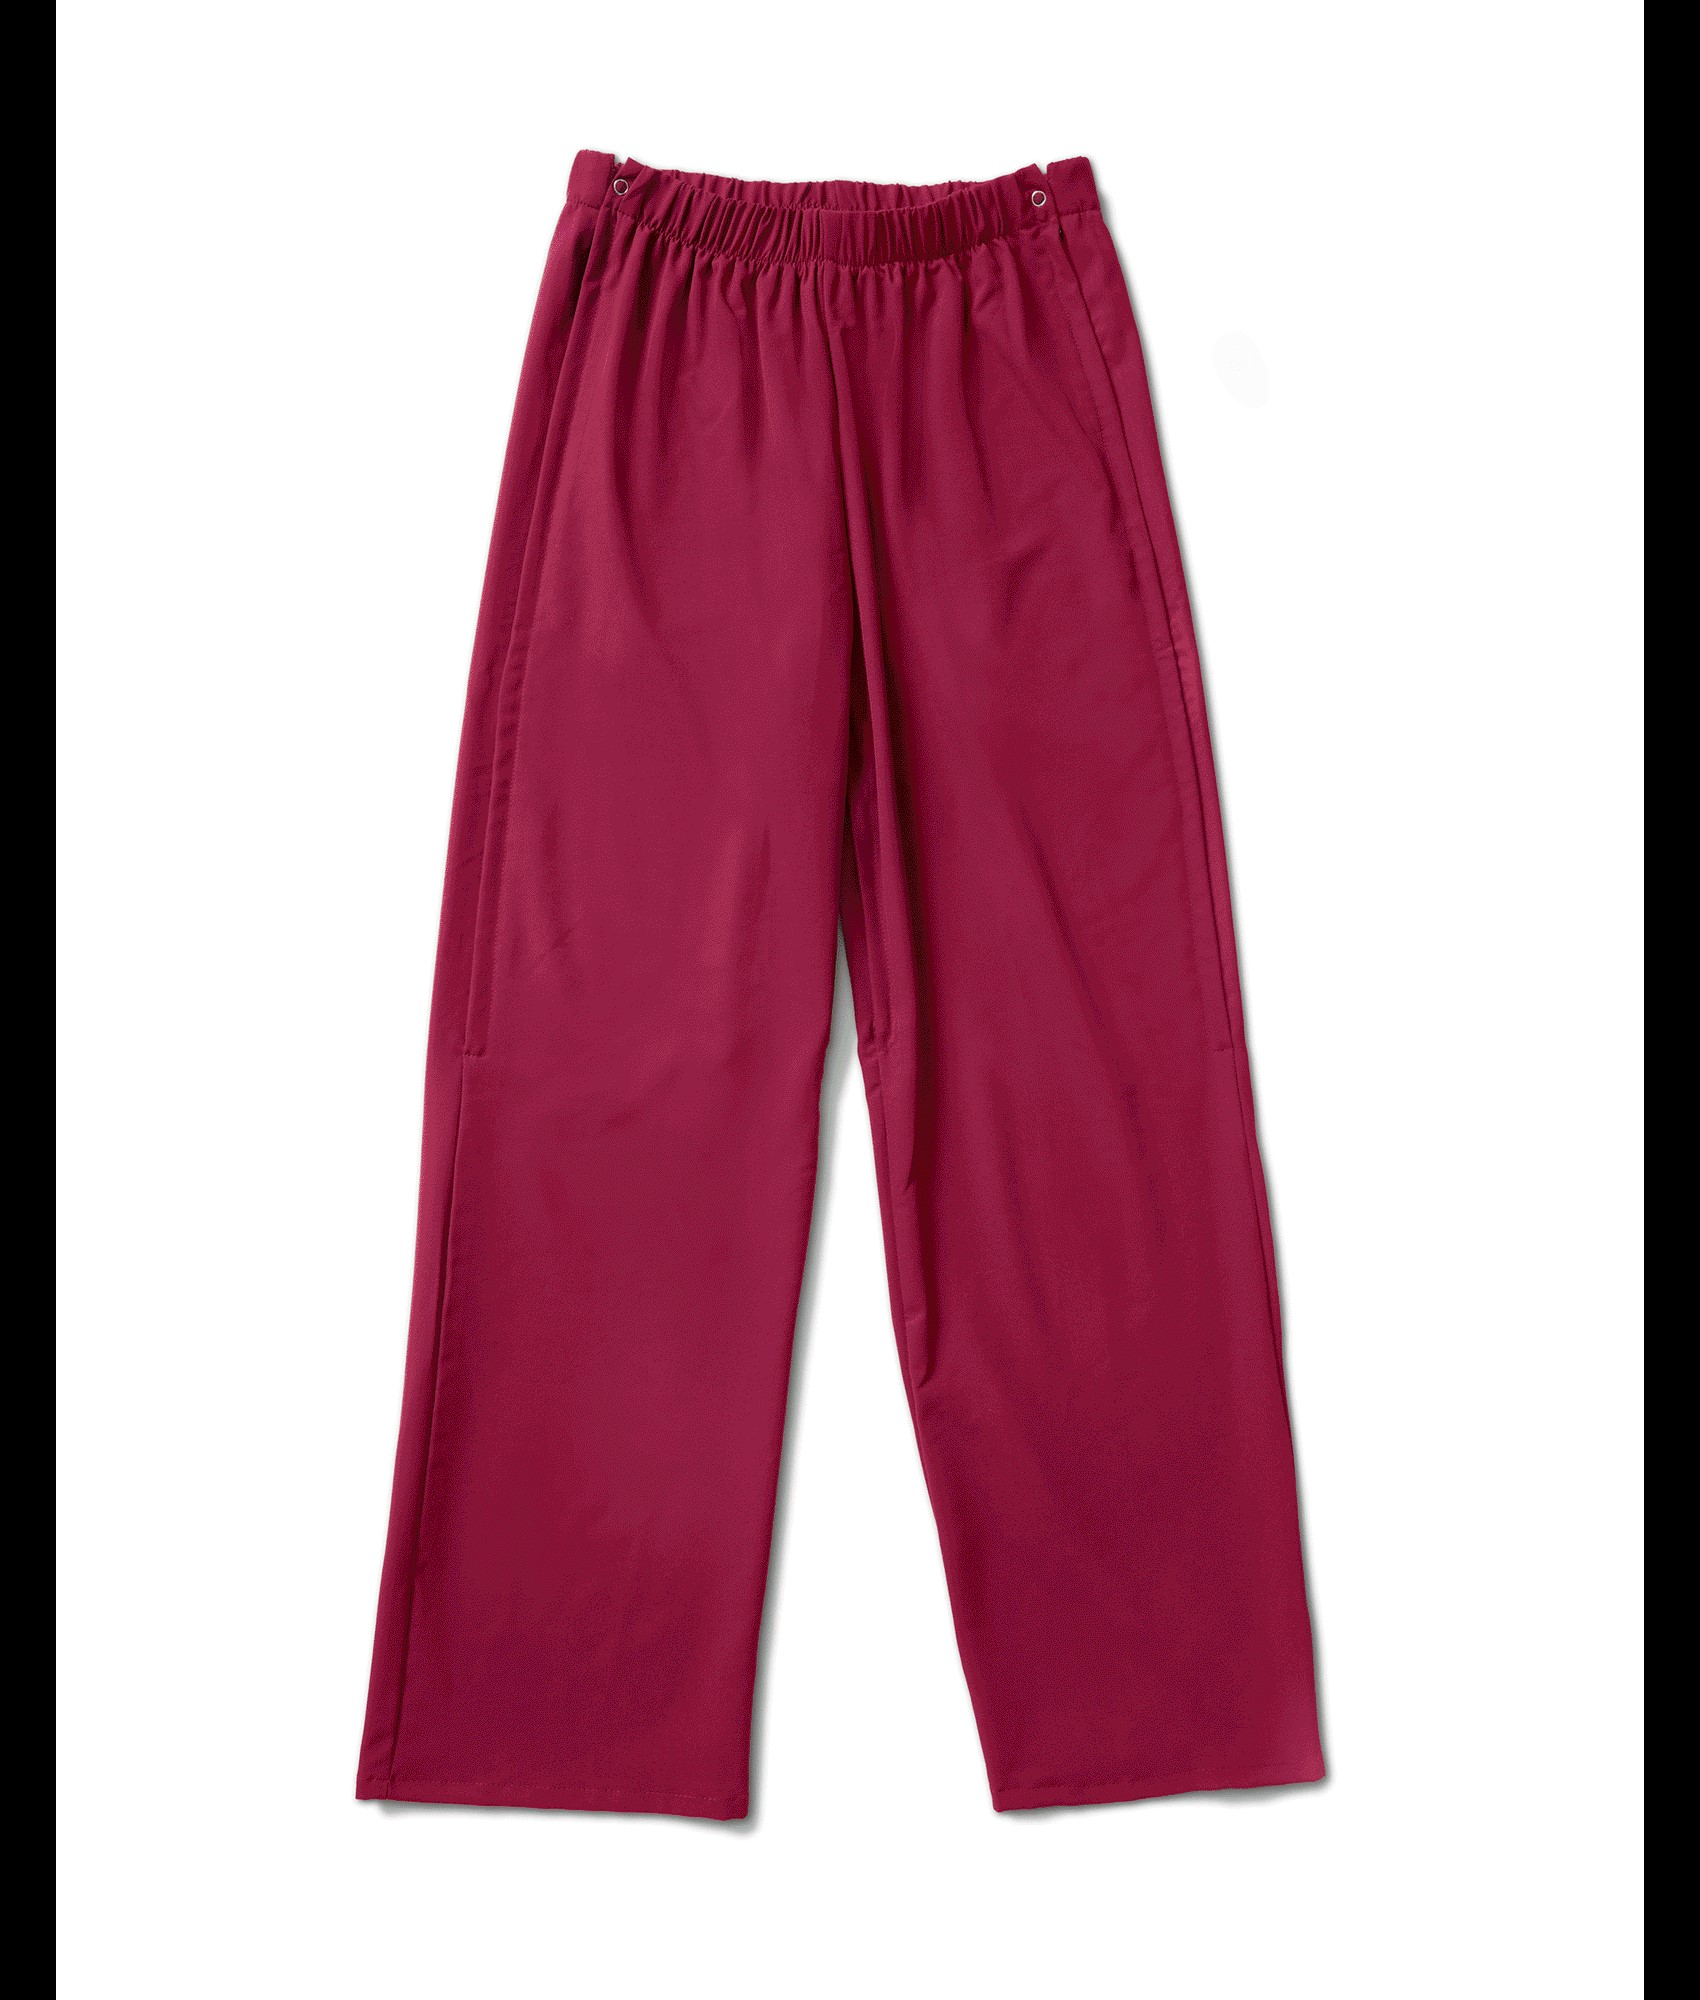 CareZips CareZips-46832-1240-S Easy Change Trousers & Pants, Plumberry - Small